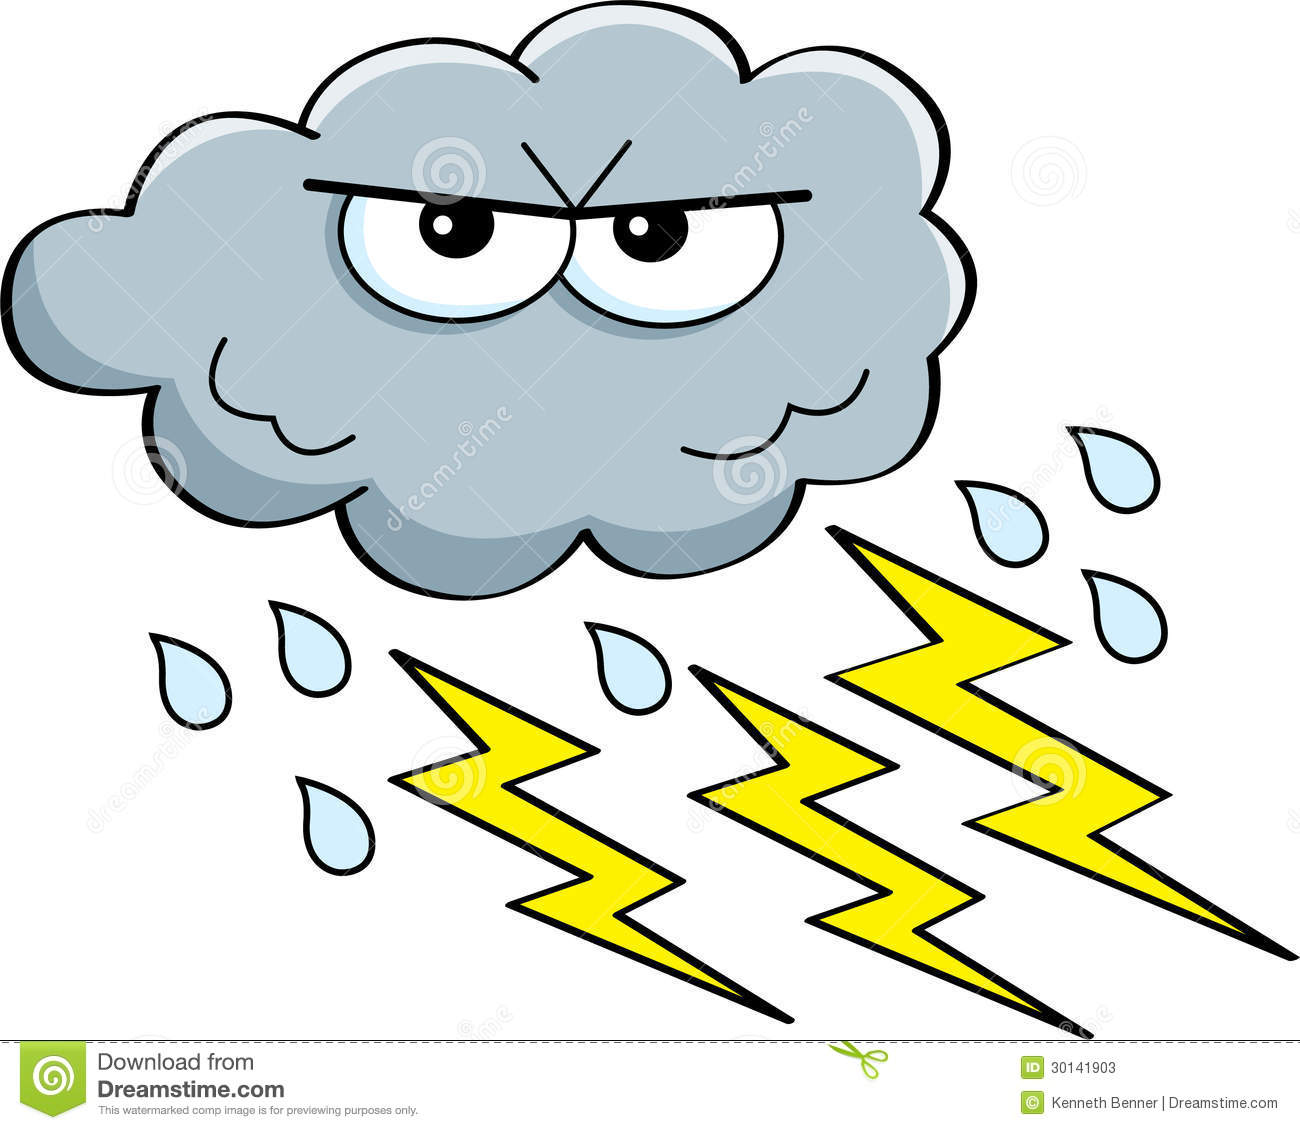 Cartoon illustration of a storm cloud with rain and lightning.